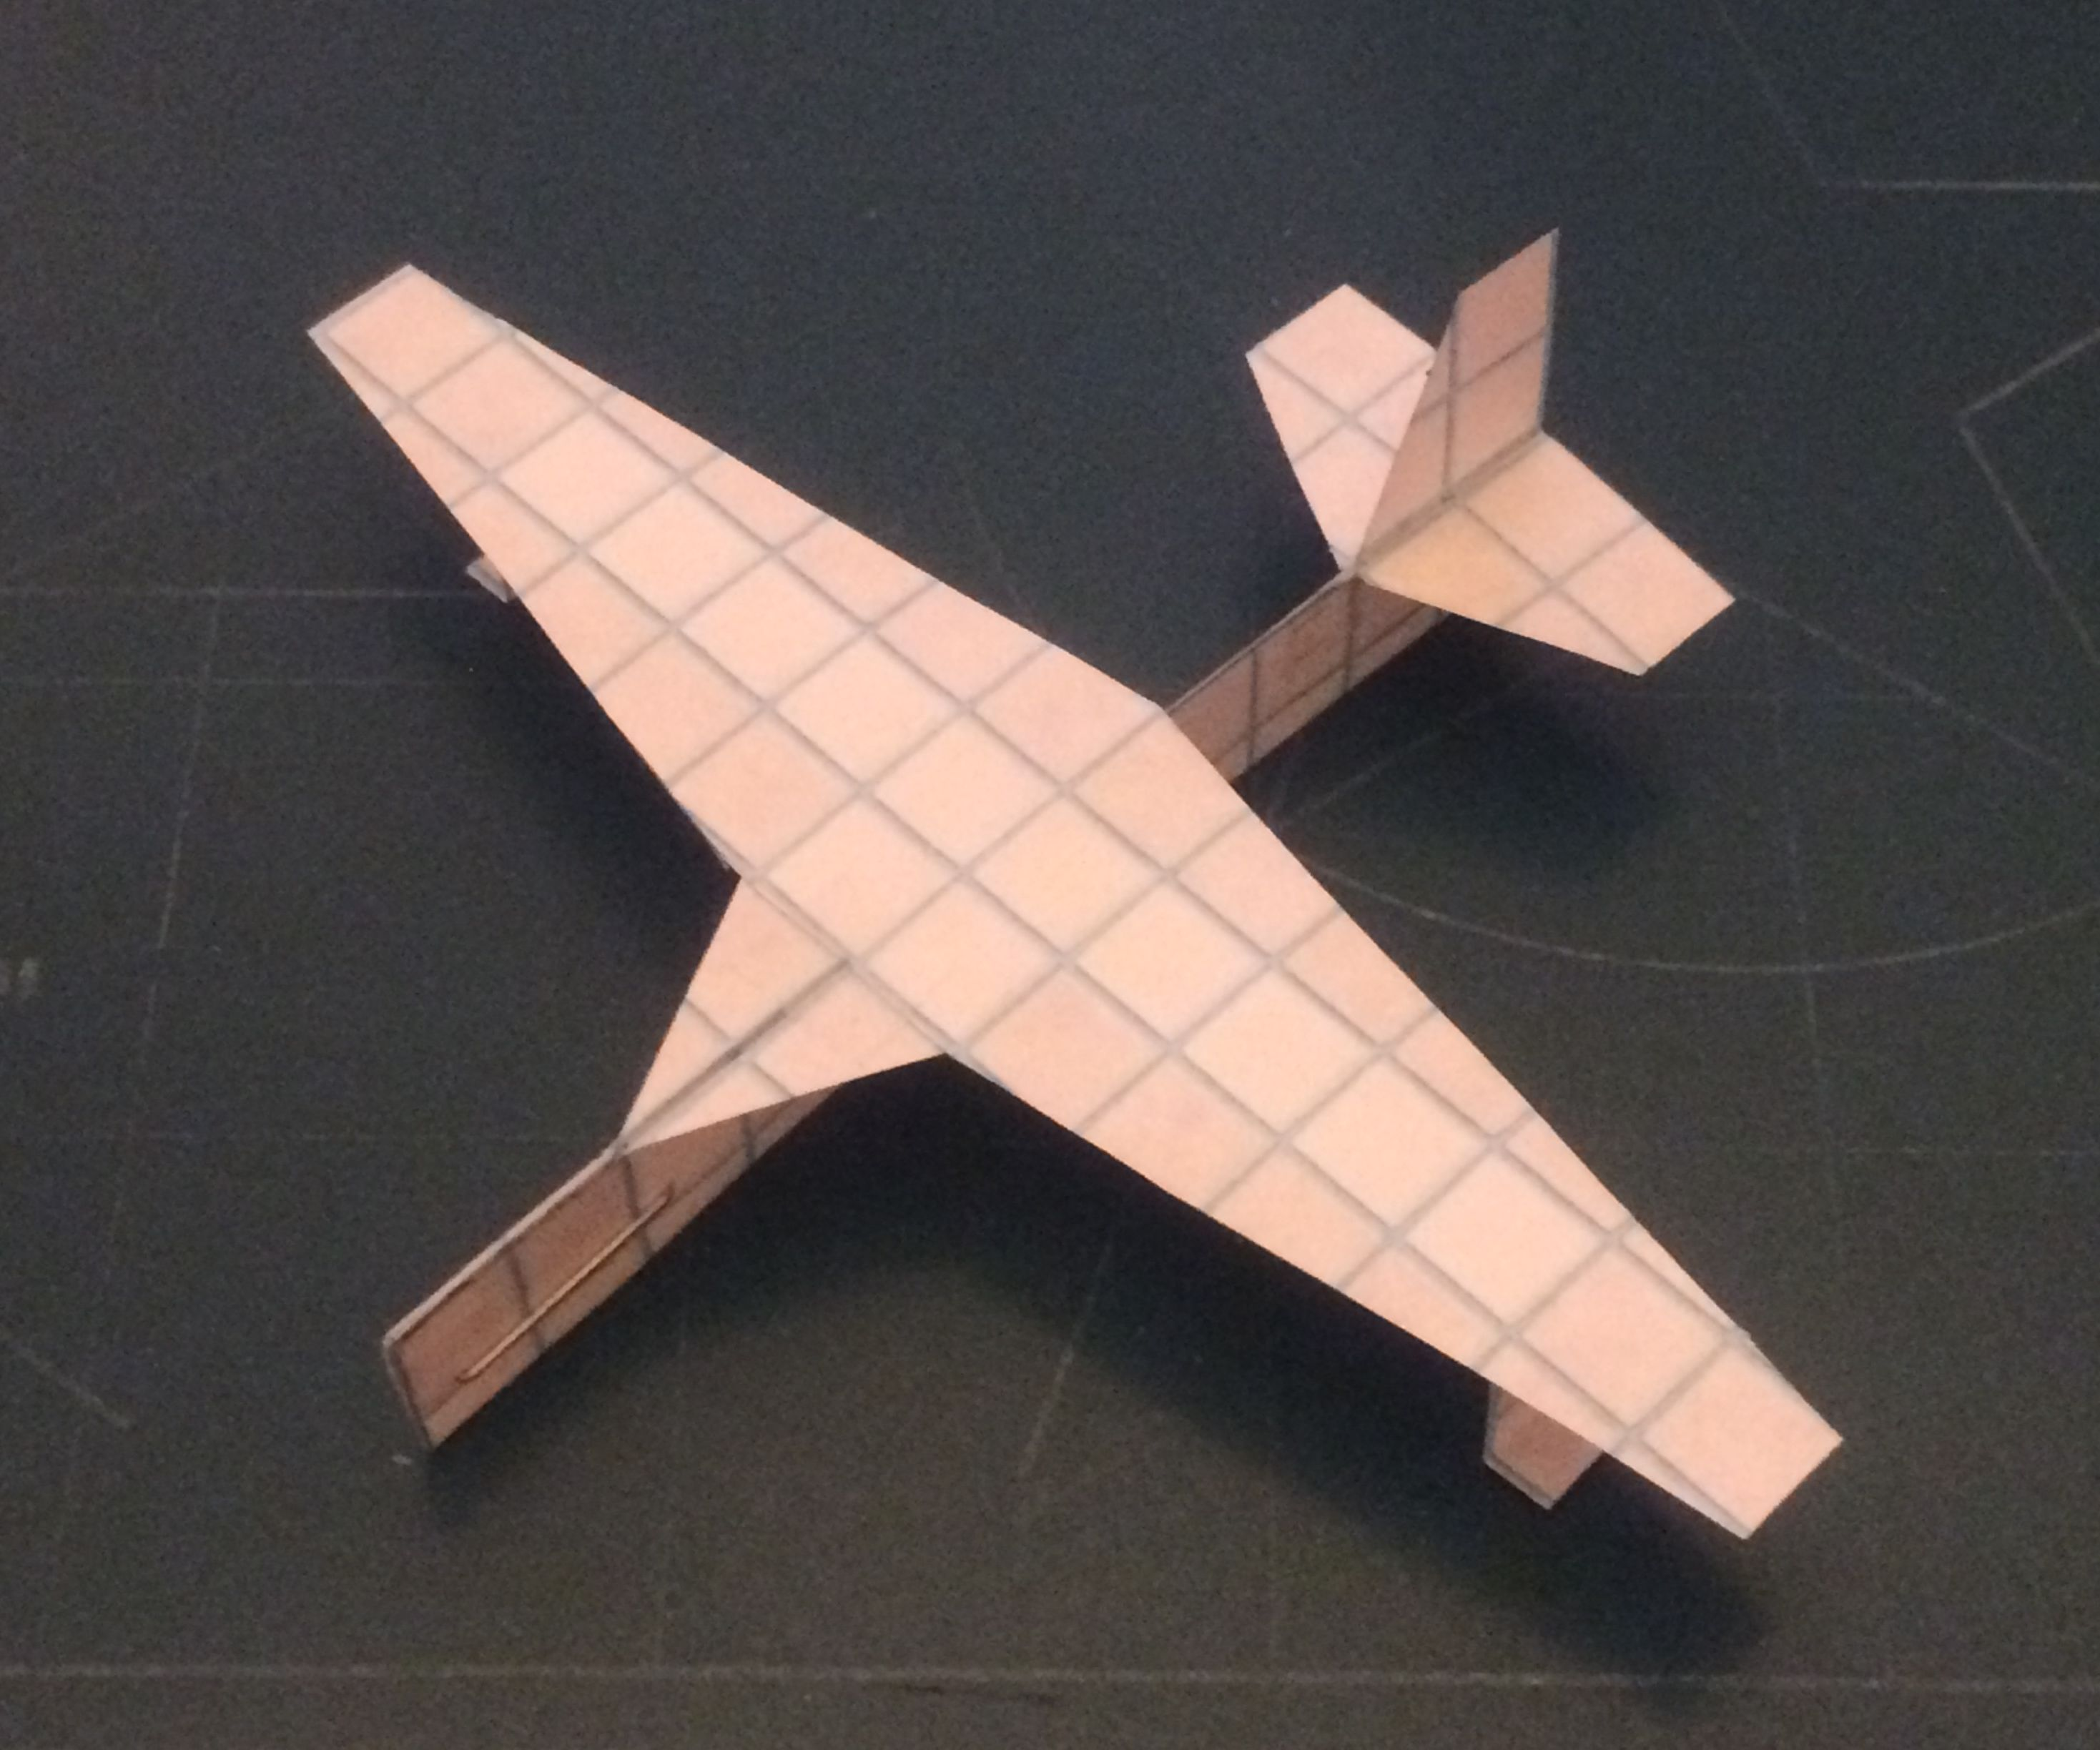 How To Make The StratoCirrus Paper Airplane